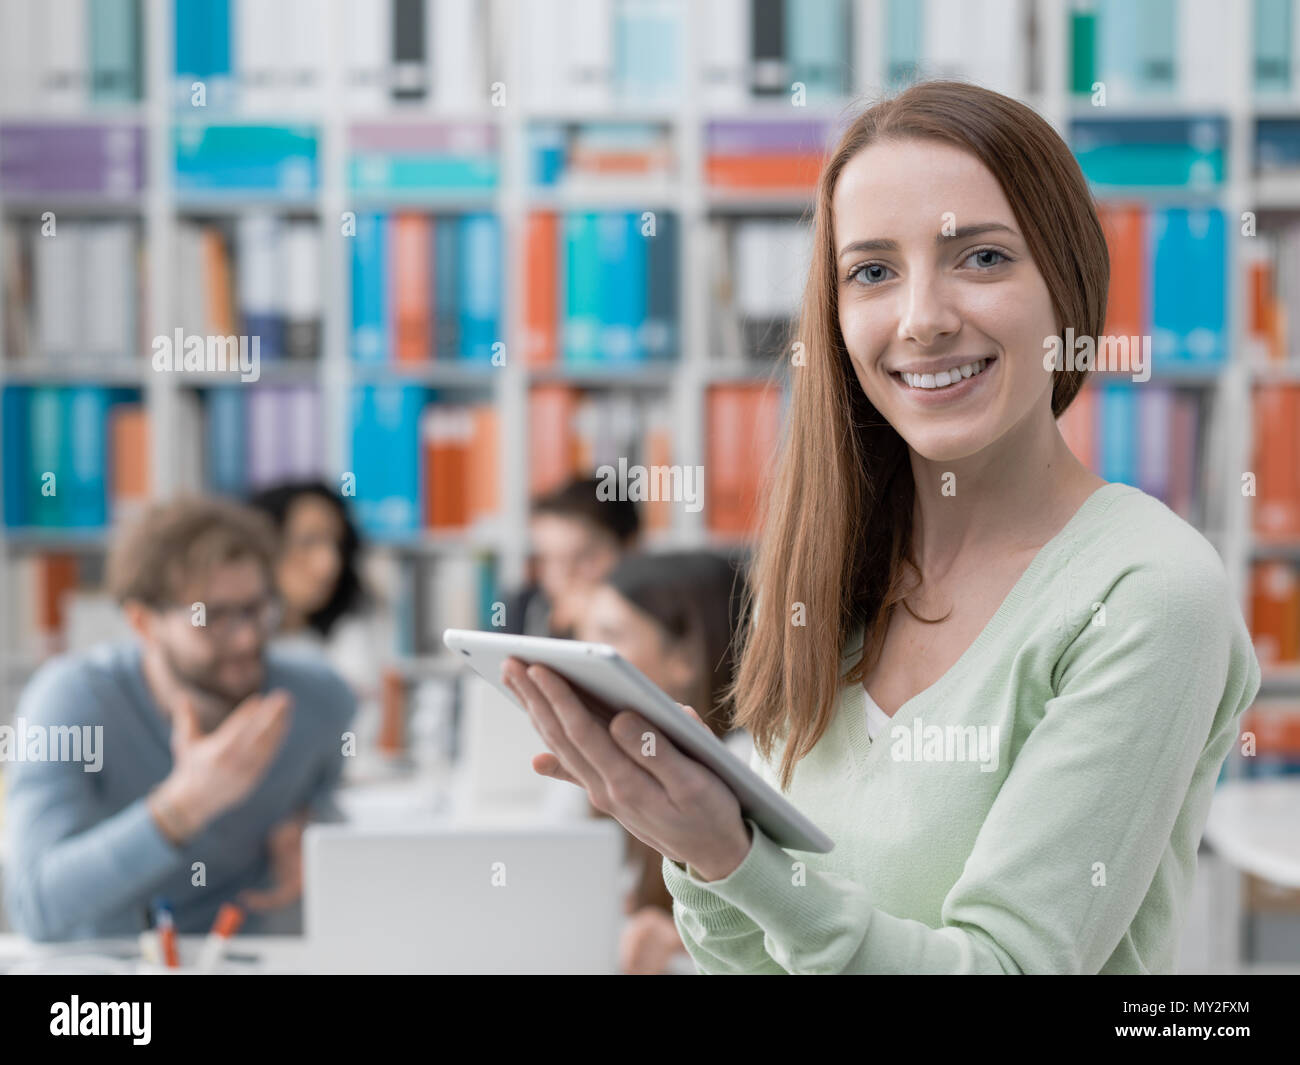 Smiling female student connecting with a digital tablet and group of students in the background - Stock Image